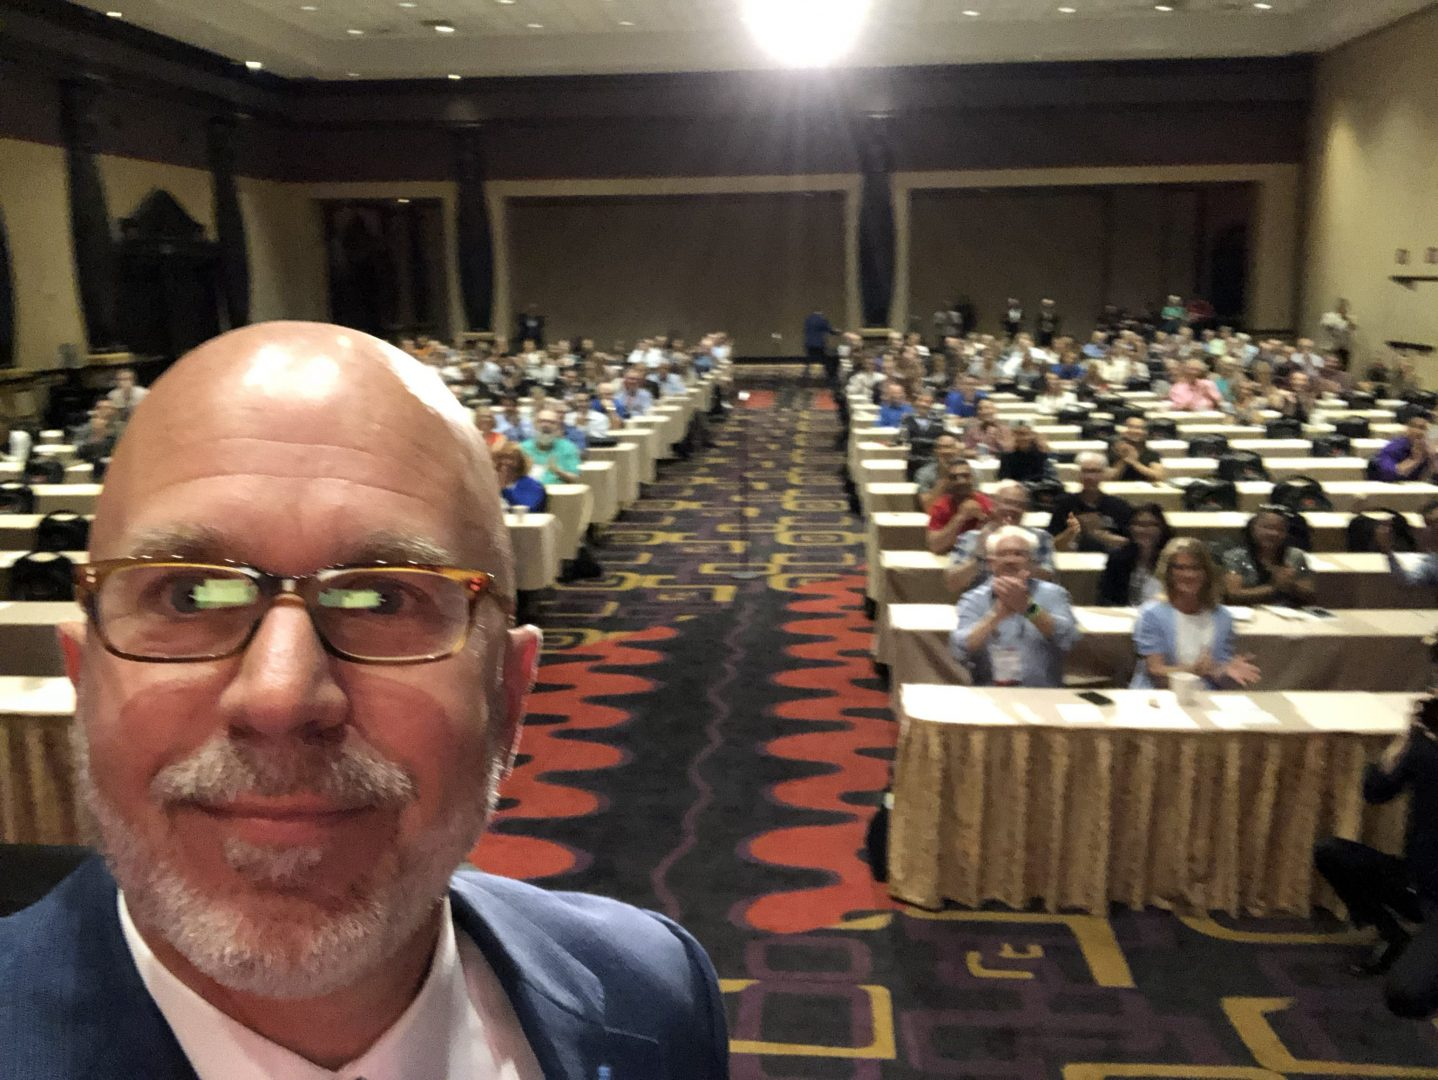 Michael's keynote presentation at AbacusNext's AbacusMaximus conference; Las Vegas, NV (July 2018)